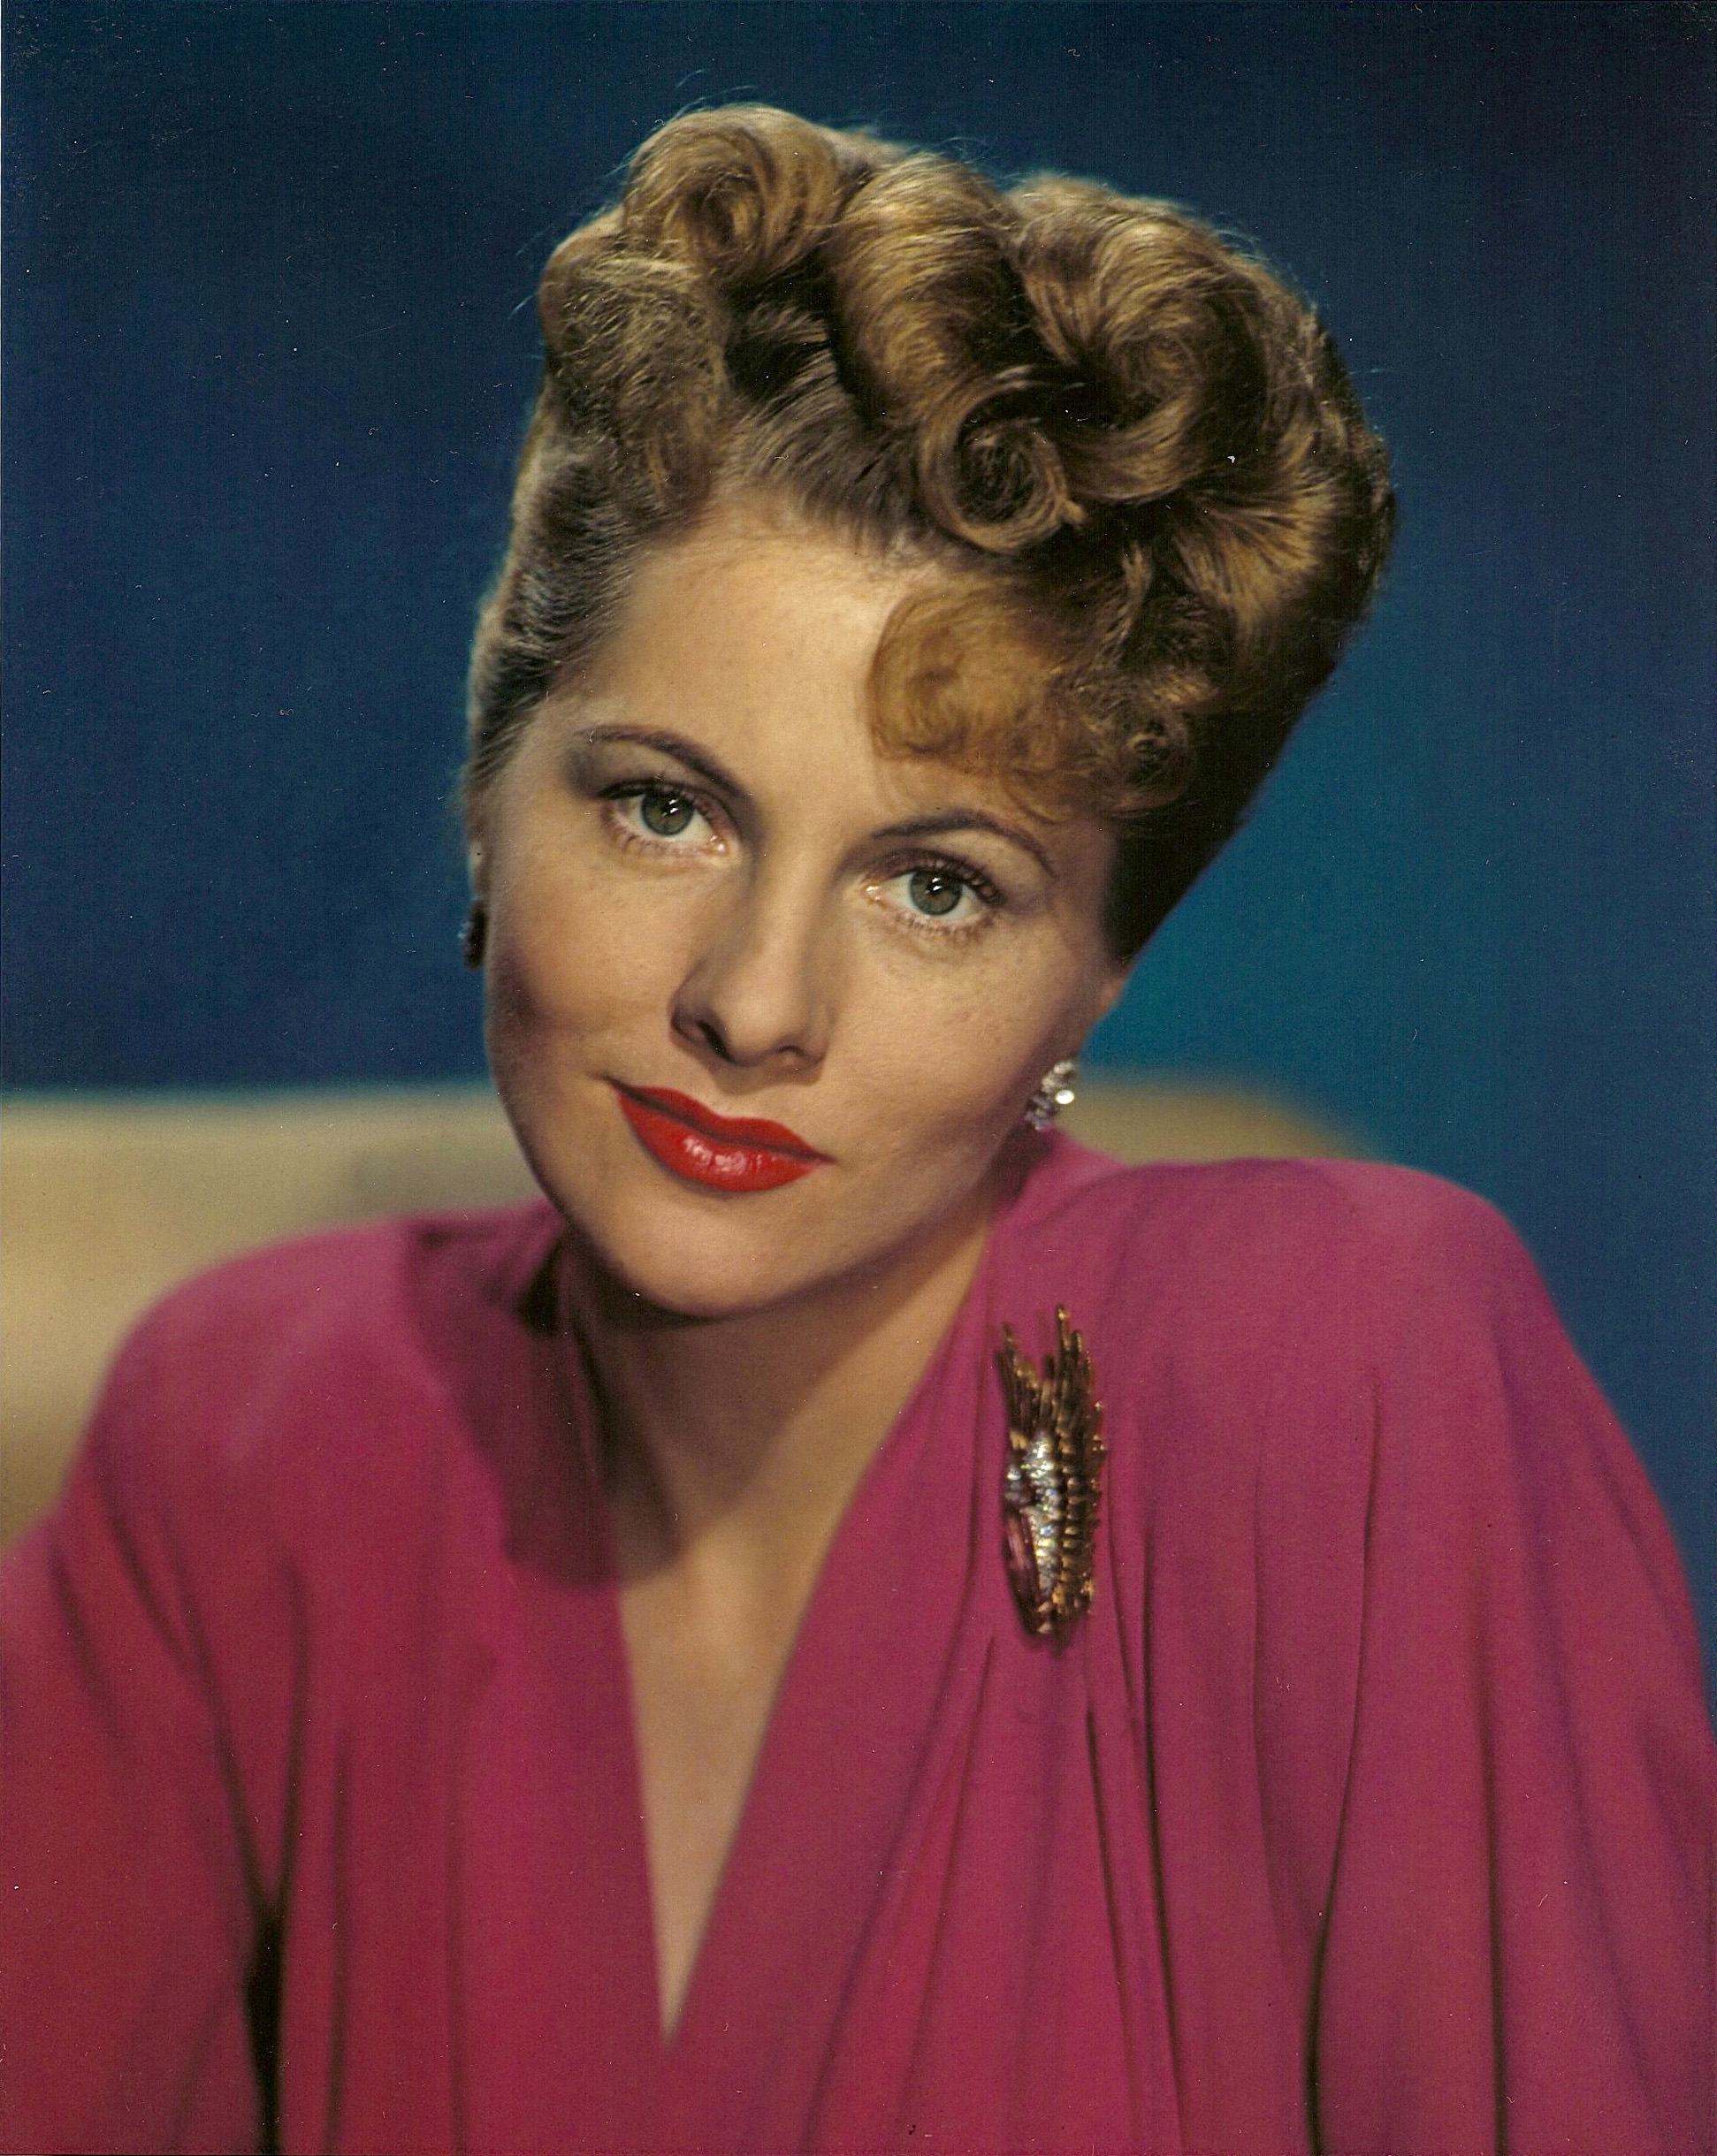 Joan fontaine nrfpt for Joan fontaine and olivia de havilland feud